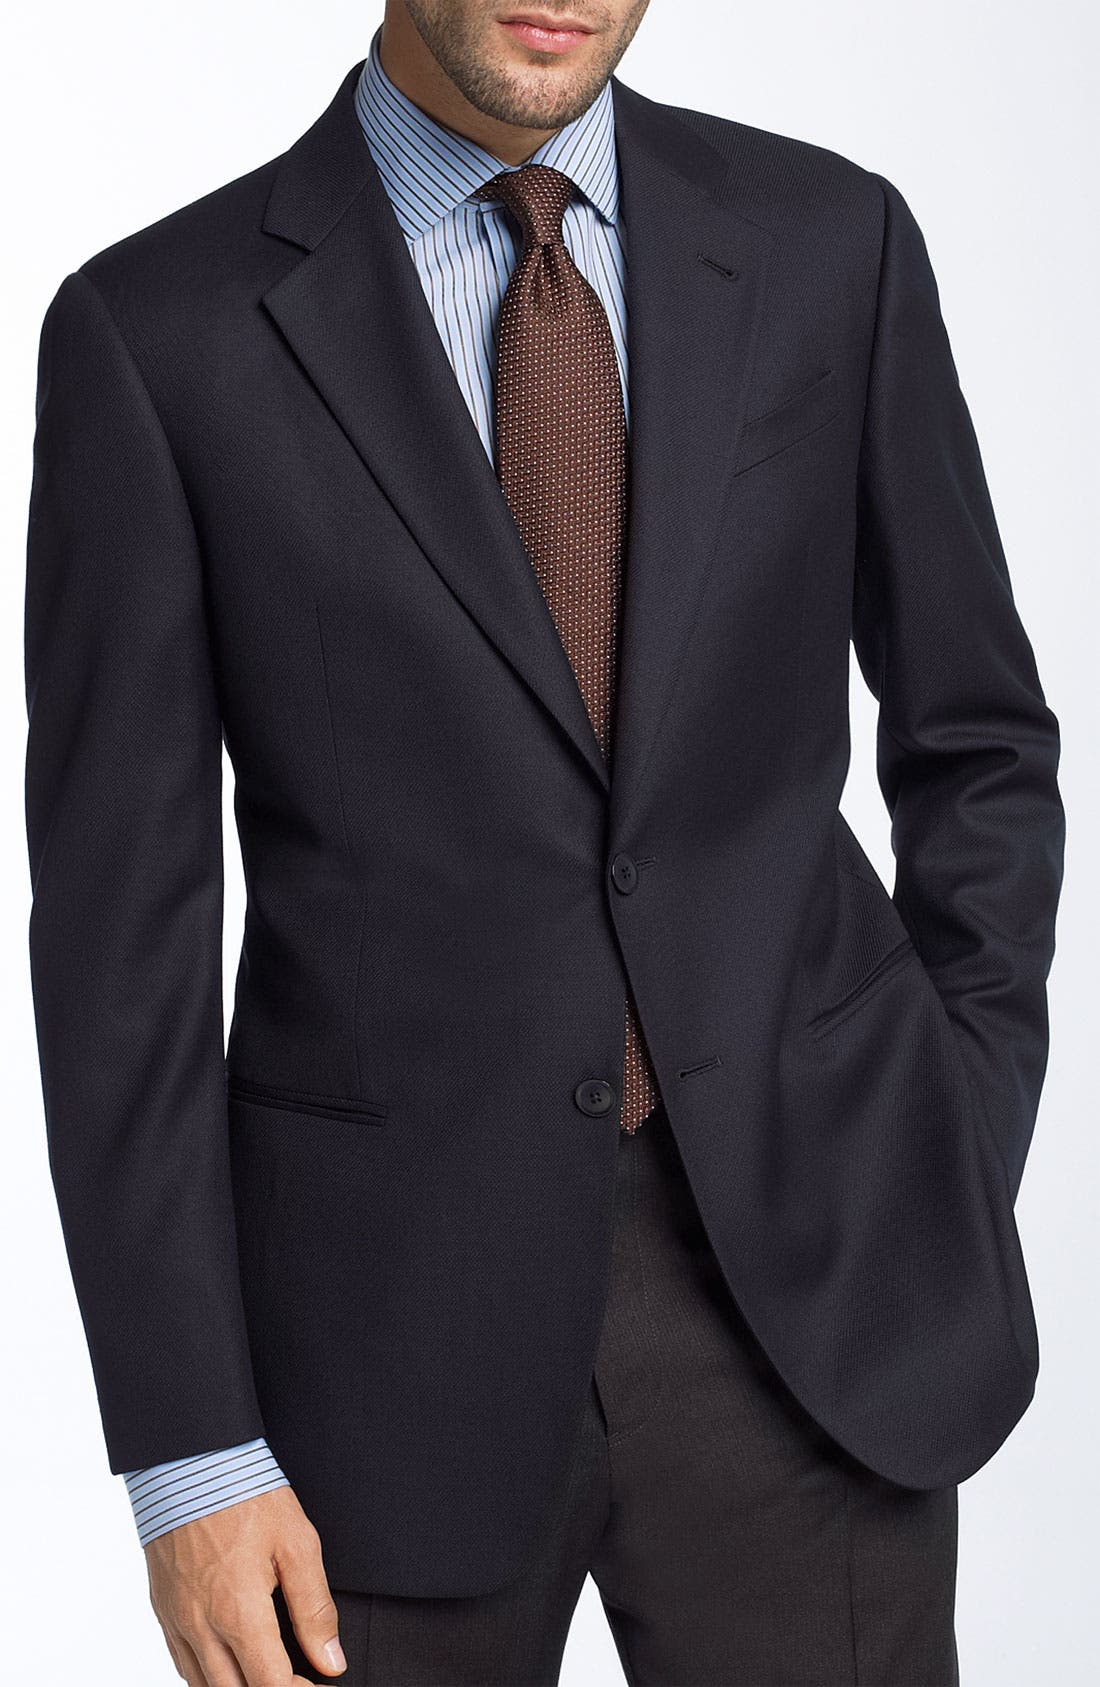 Alternate Image 1 Selected - Armani Collezioni Trim Fit Wool Blazer